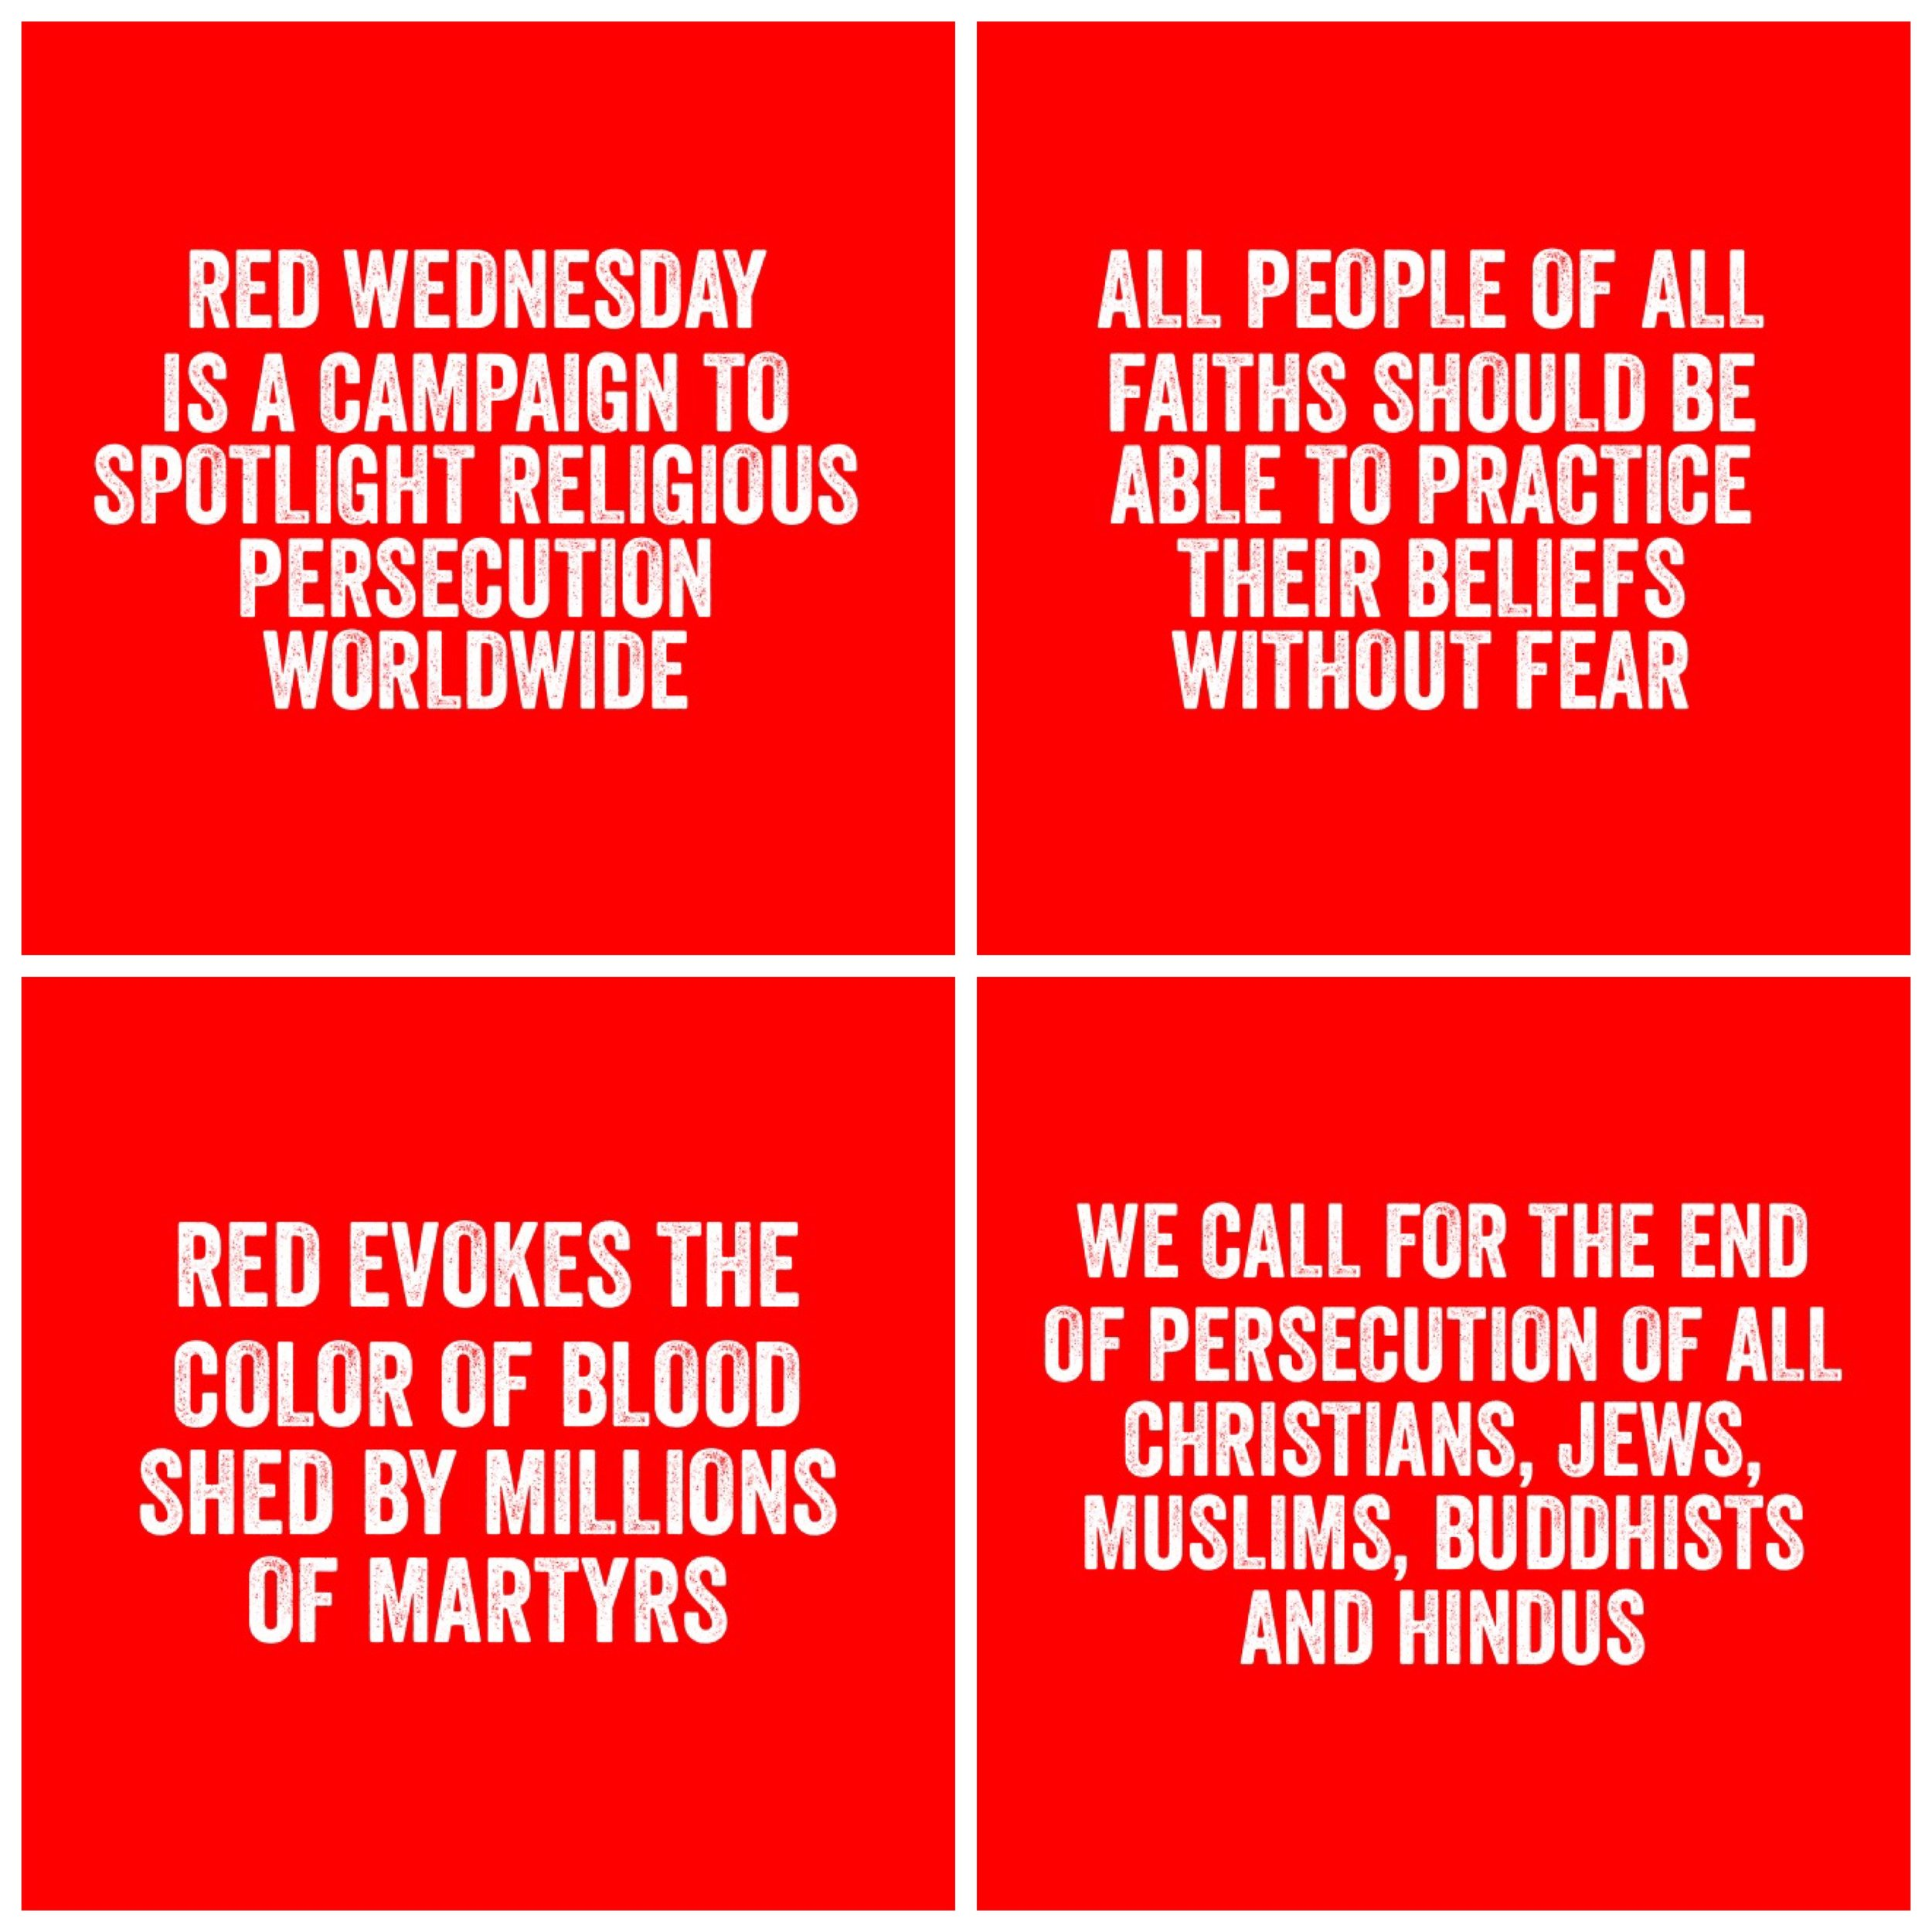 Let's enjoy our forgiveness and freedom to believe together. - And in the spirit of solidarity, take a #RedWednesday selfie, tag us @calstgnyc and @redwednesdaynyc, and share it on social media with the hashtag #RedWednesday.